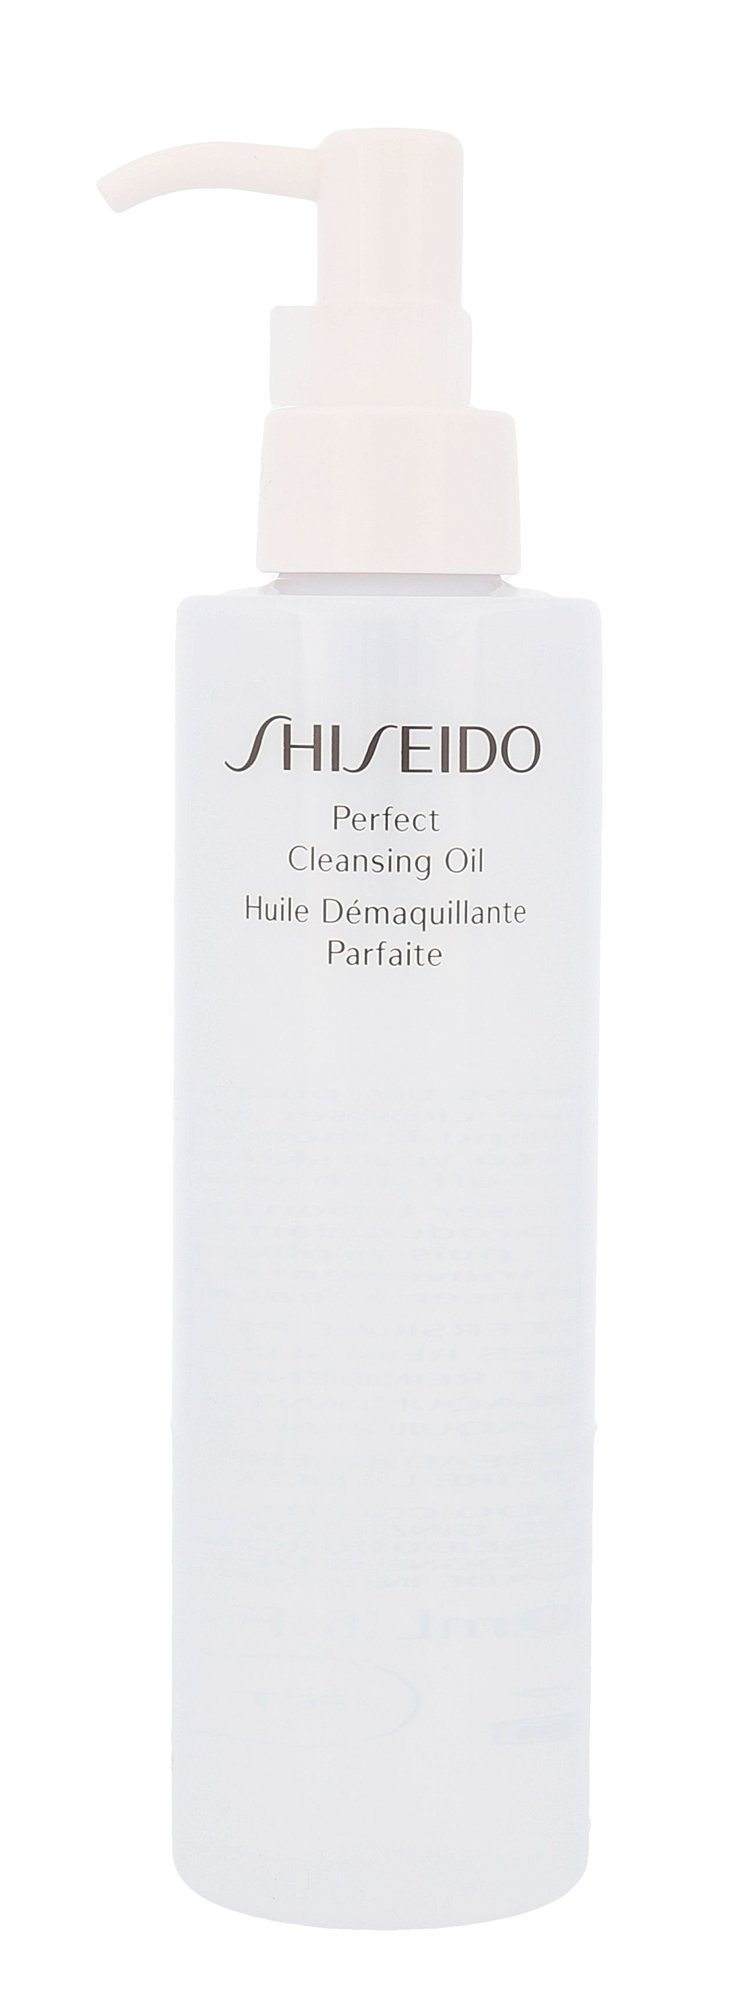 Shiseido Perfect Cleansing Oil Cosmetic 180ml